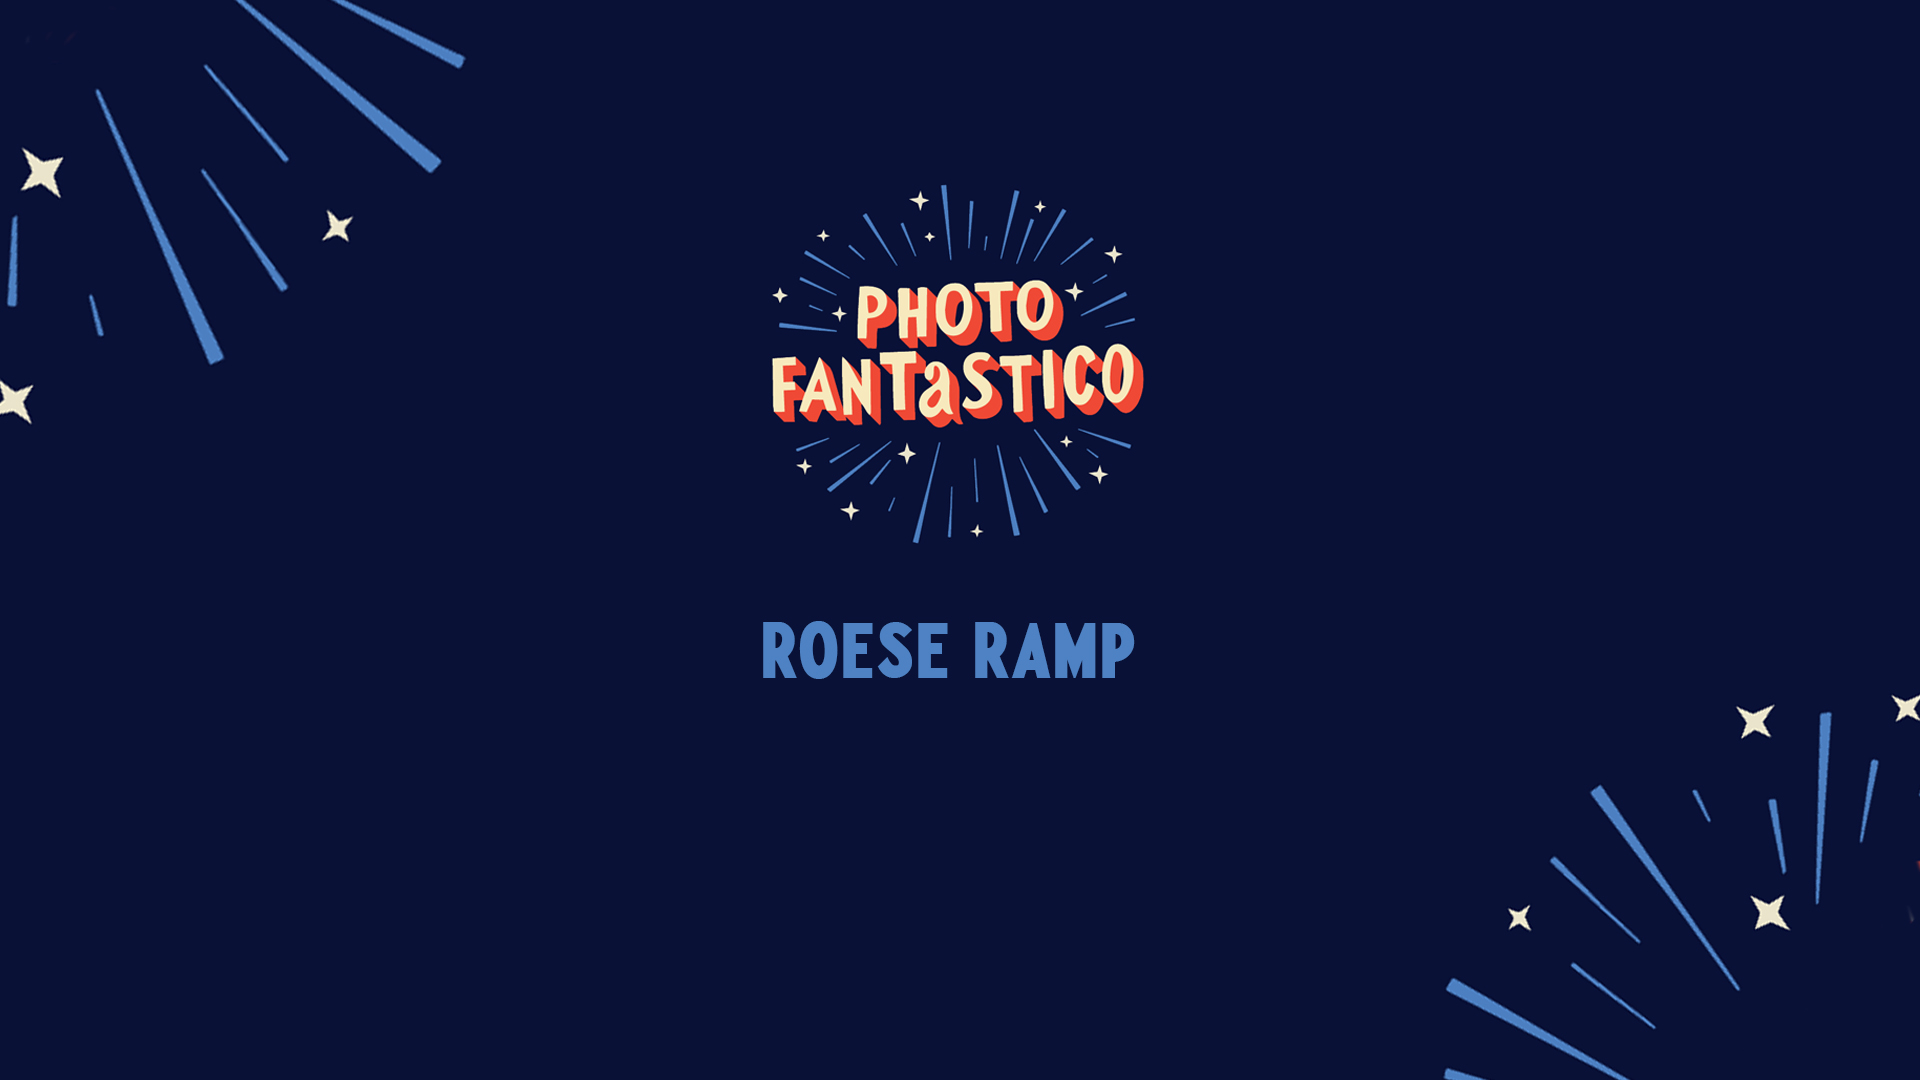 roese ramp